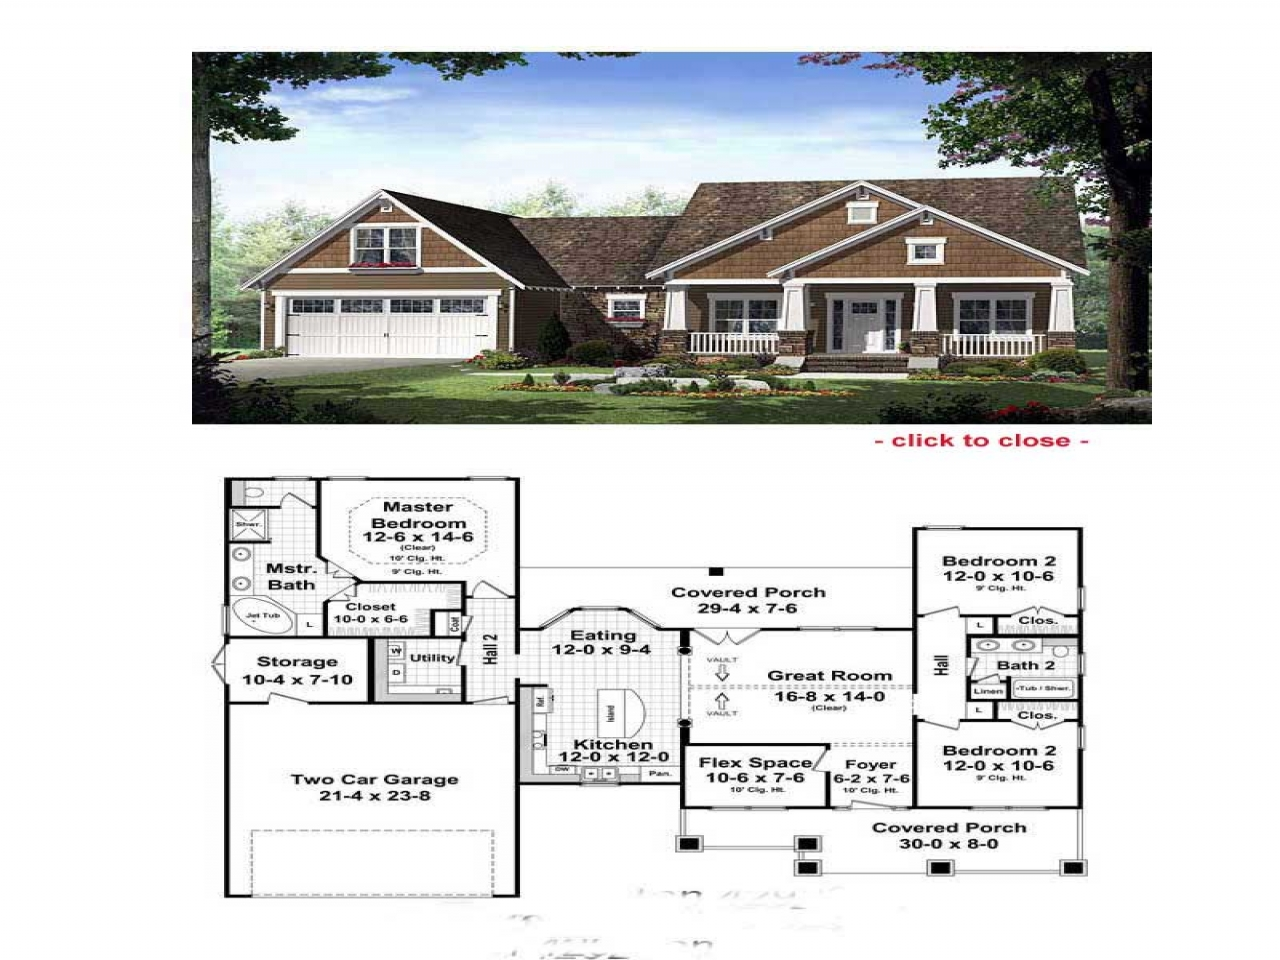 1929 craftsman bungalow floor plans bungalow floor plans for Arts and crafts bungalow floor plans